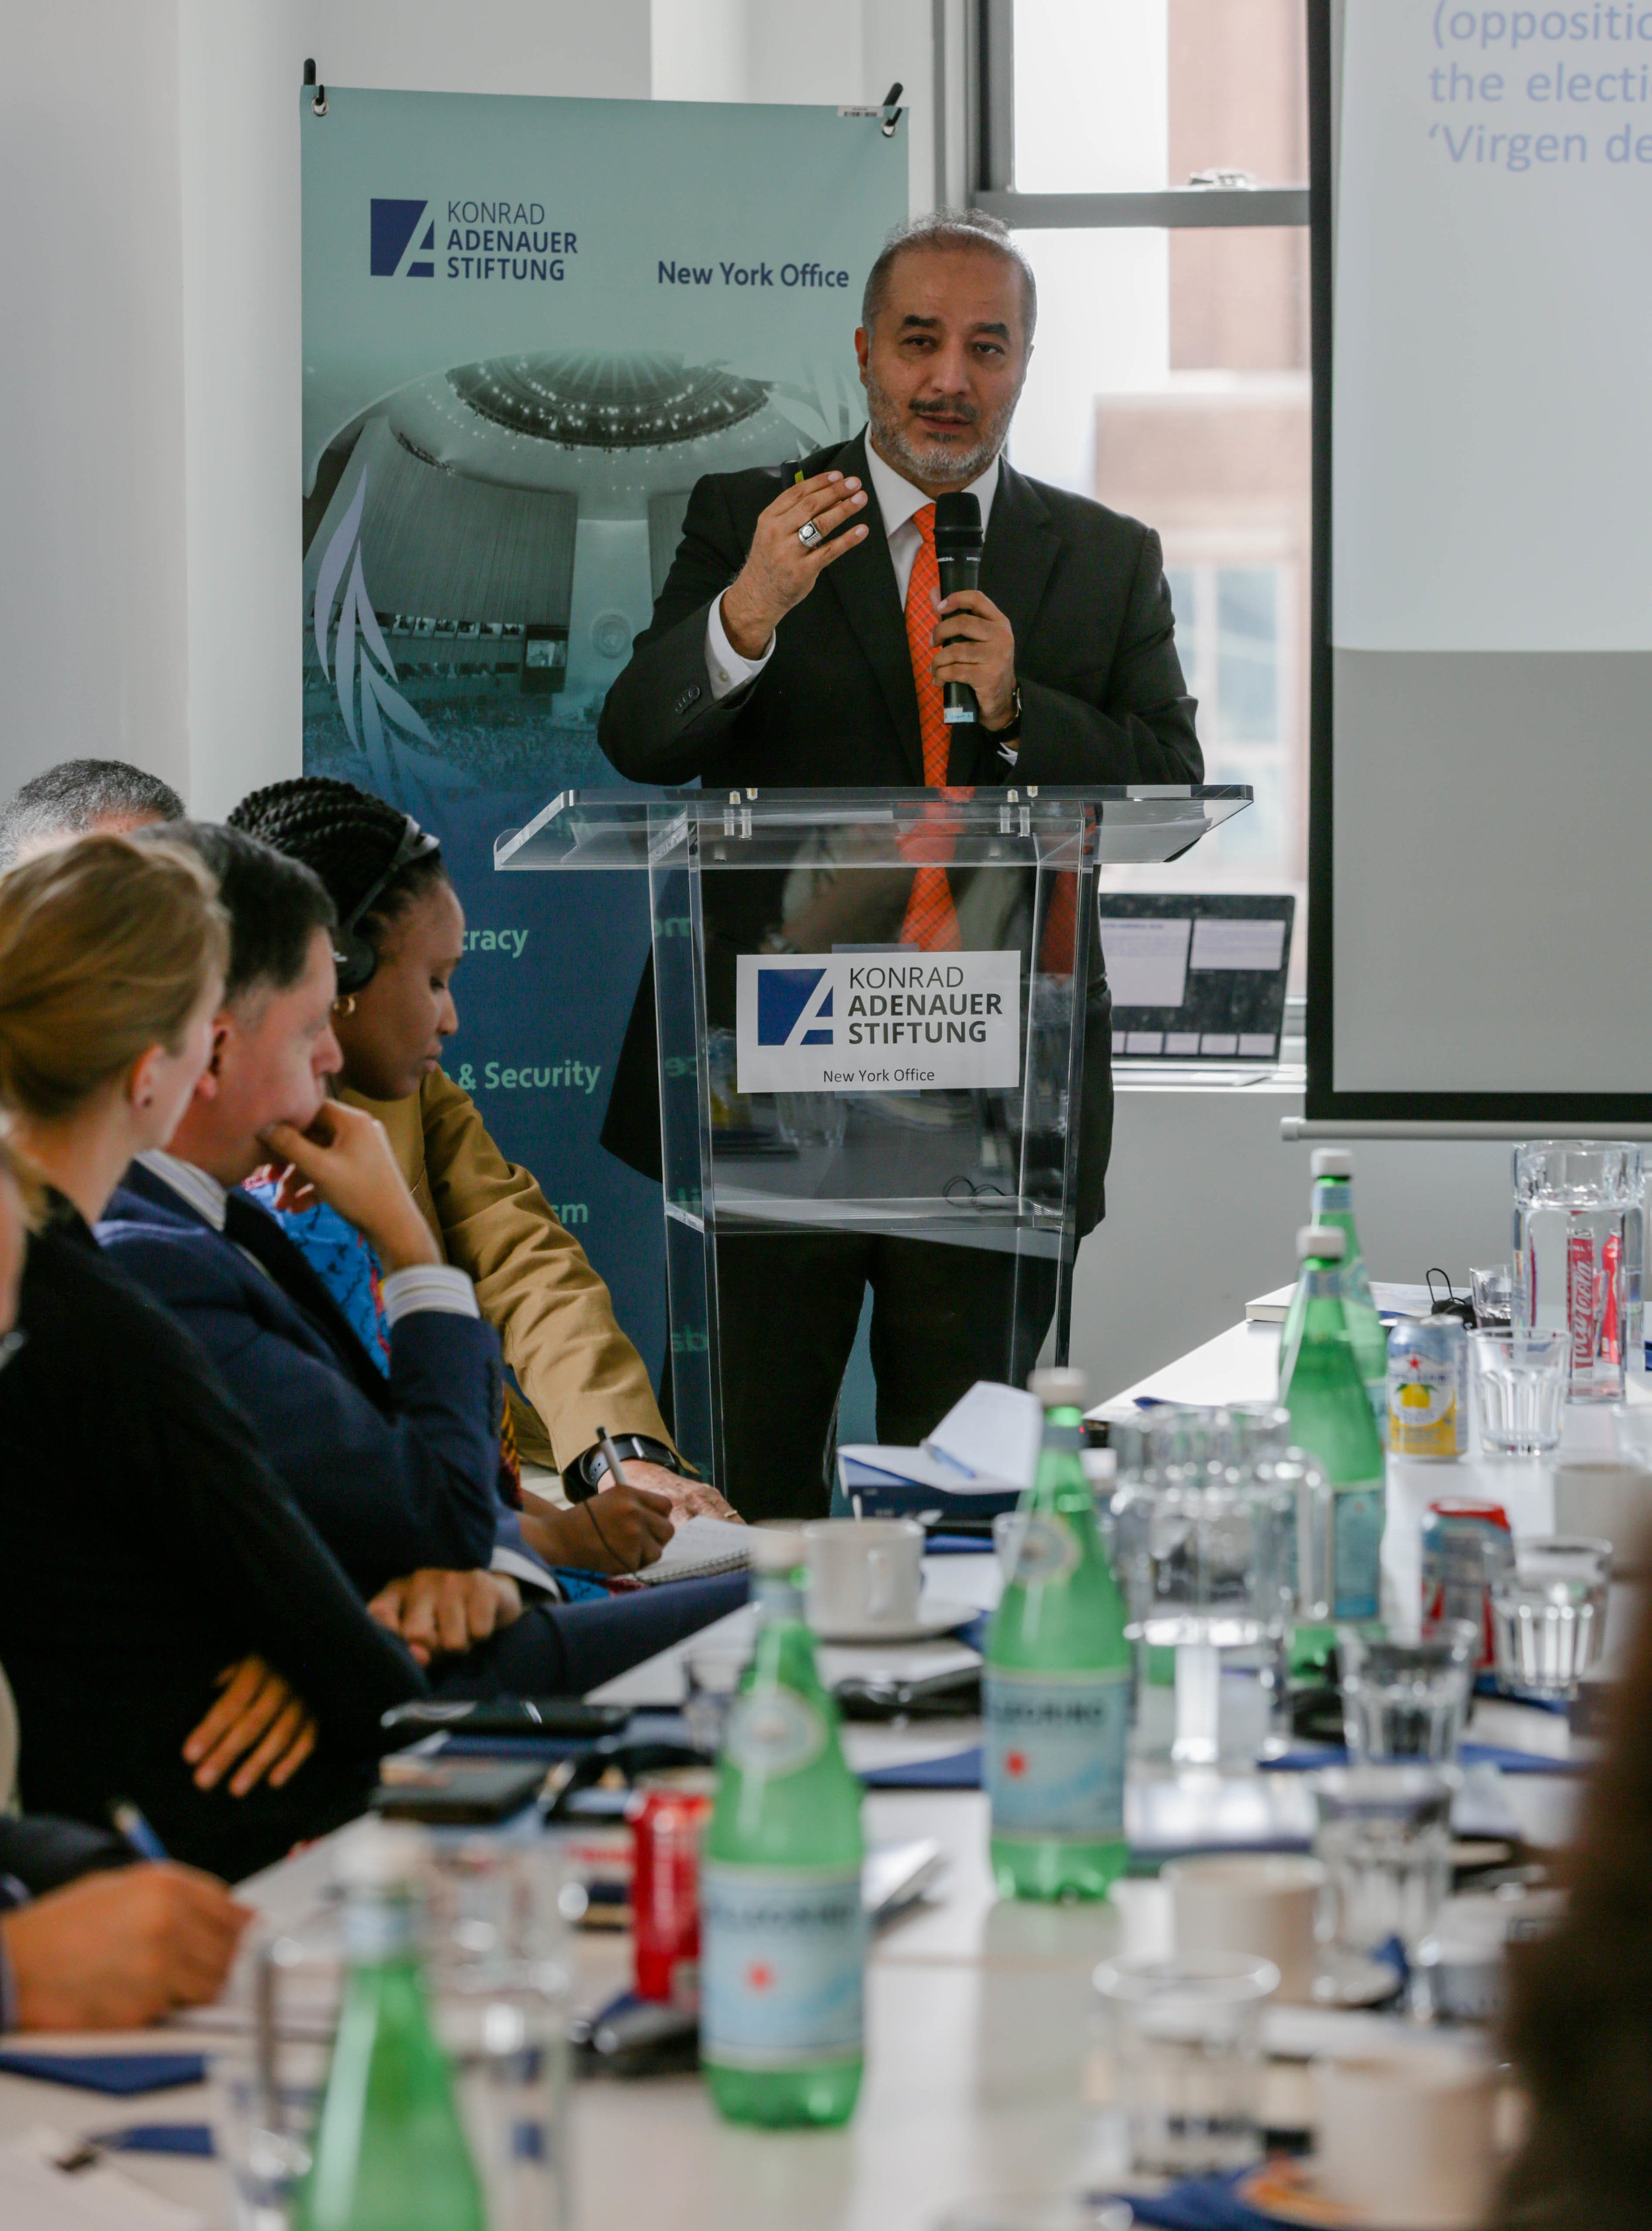 Dr. Jose Luiz Guadalupe speaks at an event sponsored by Konrad Adenauer Stiftung, the German think tank. Photo by Wes Parnell.